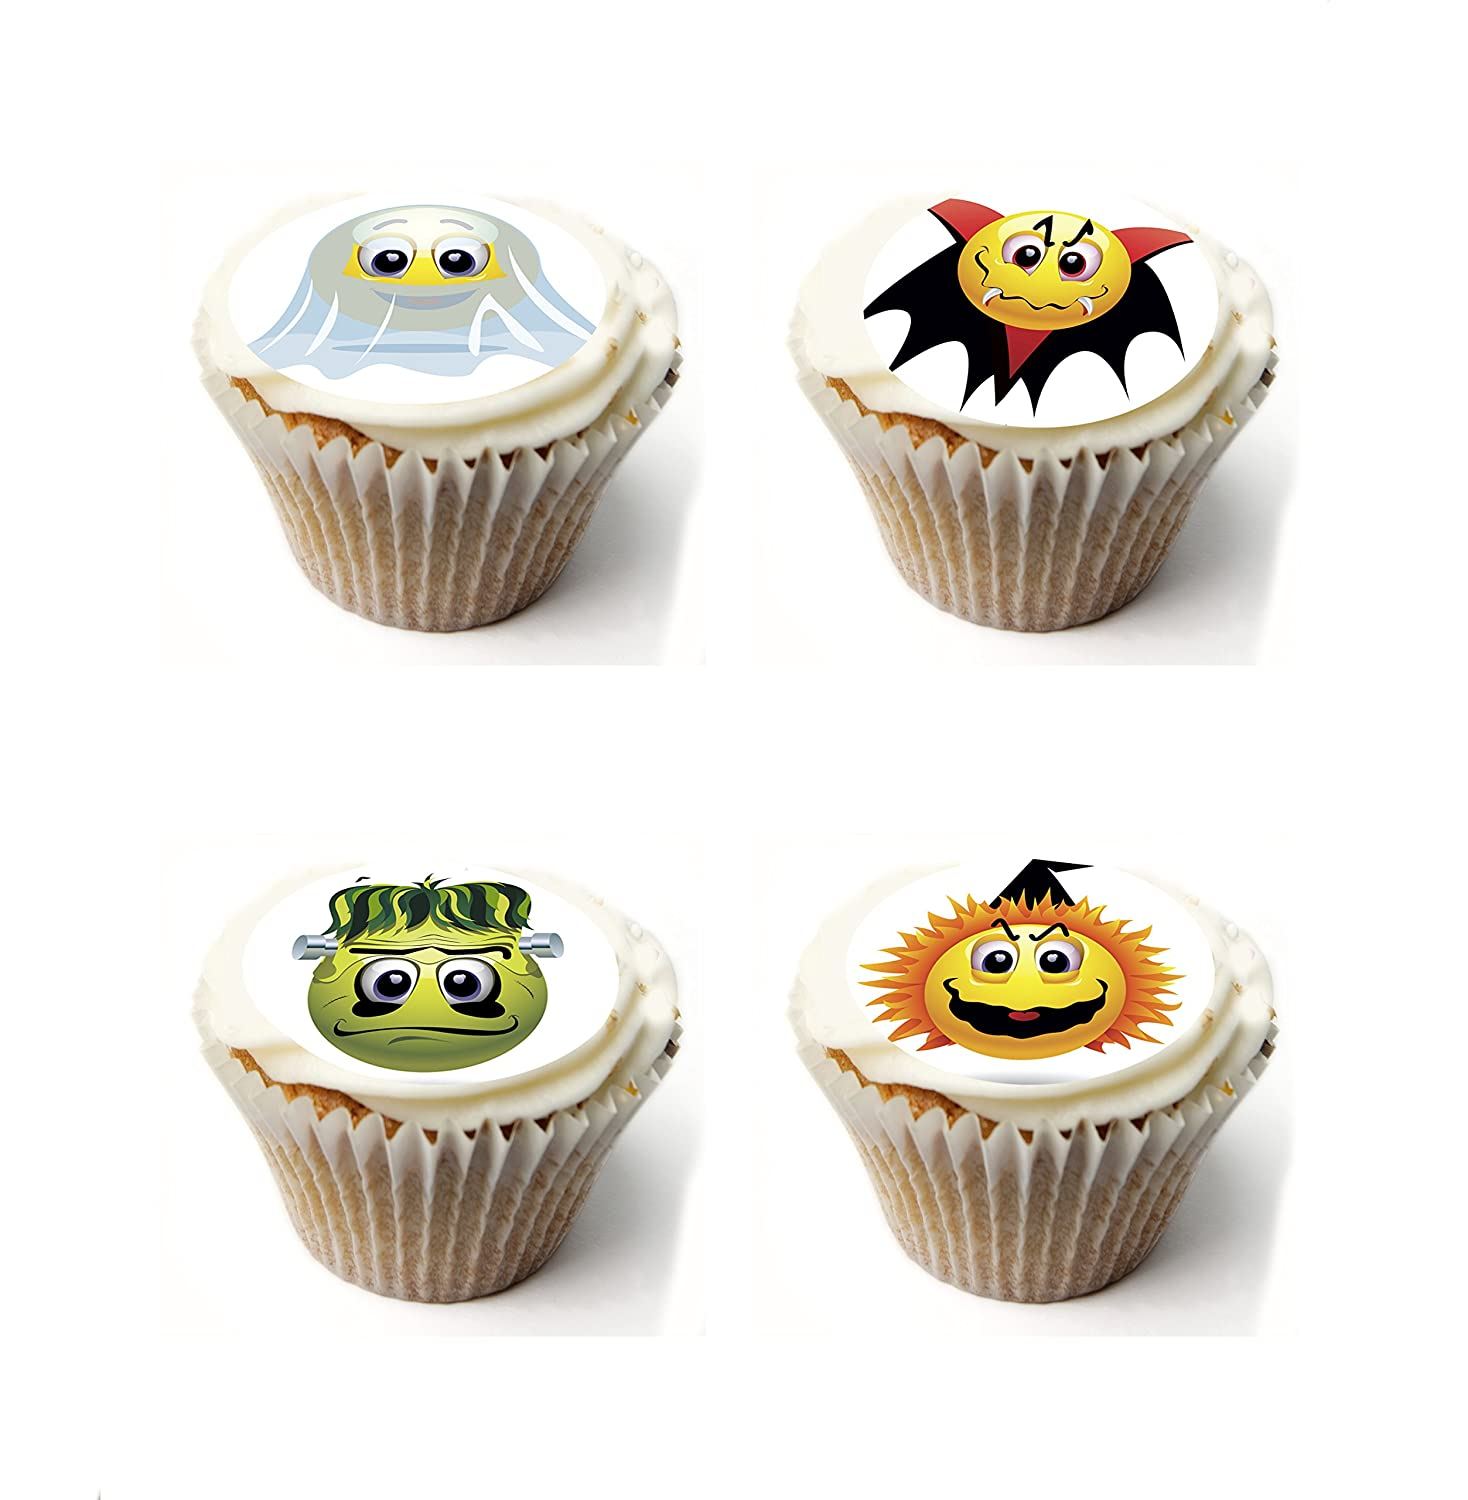 Halloween Emoji Cupcake Toppers Fairy Cake Toppers Muffin Cake Toppers PRE CUT Edible Icing Frosting Sheet or Rice paper Wafer. x 20 PRE CUT 1.75 Inch. Ideal for halloween party, halloween cake, halloween decoration etc